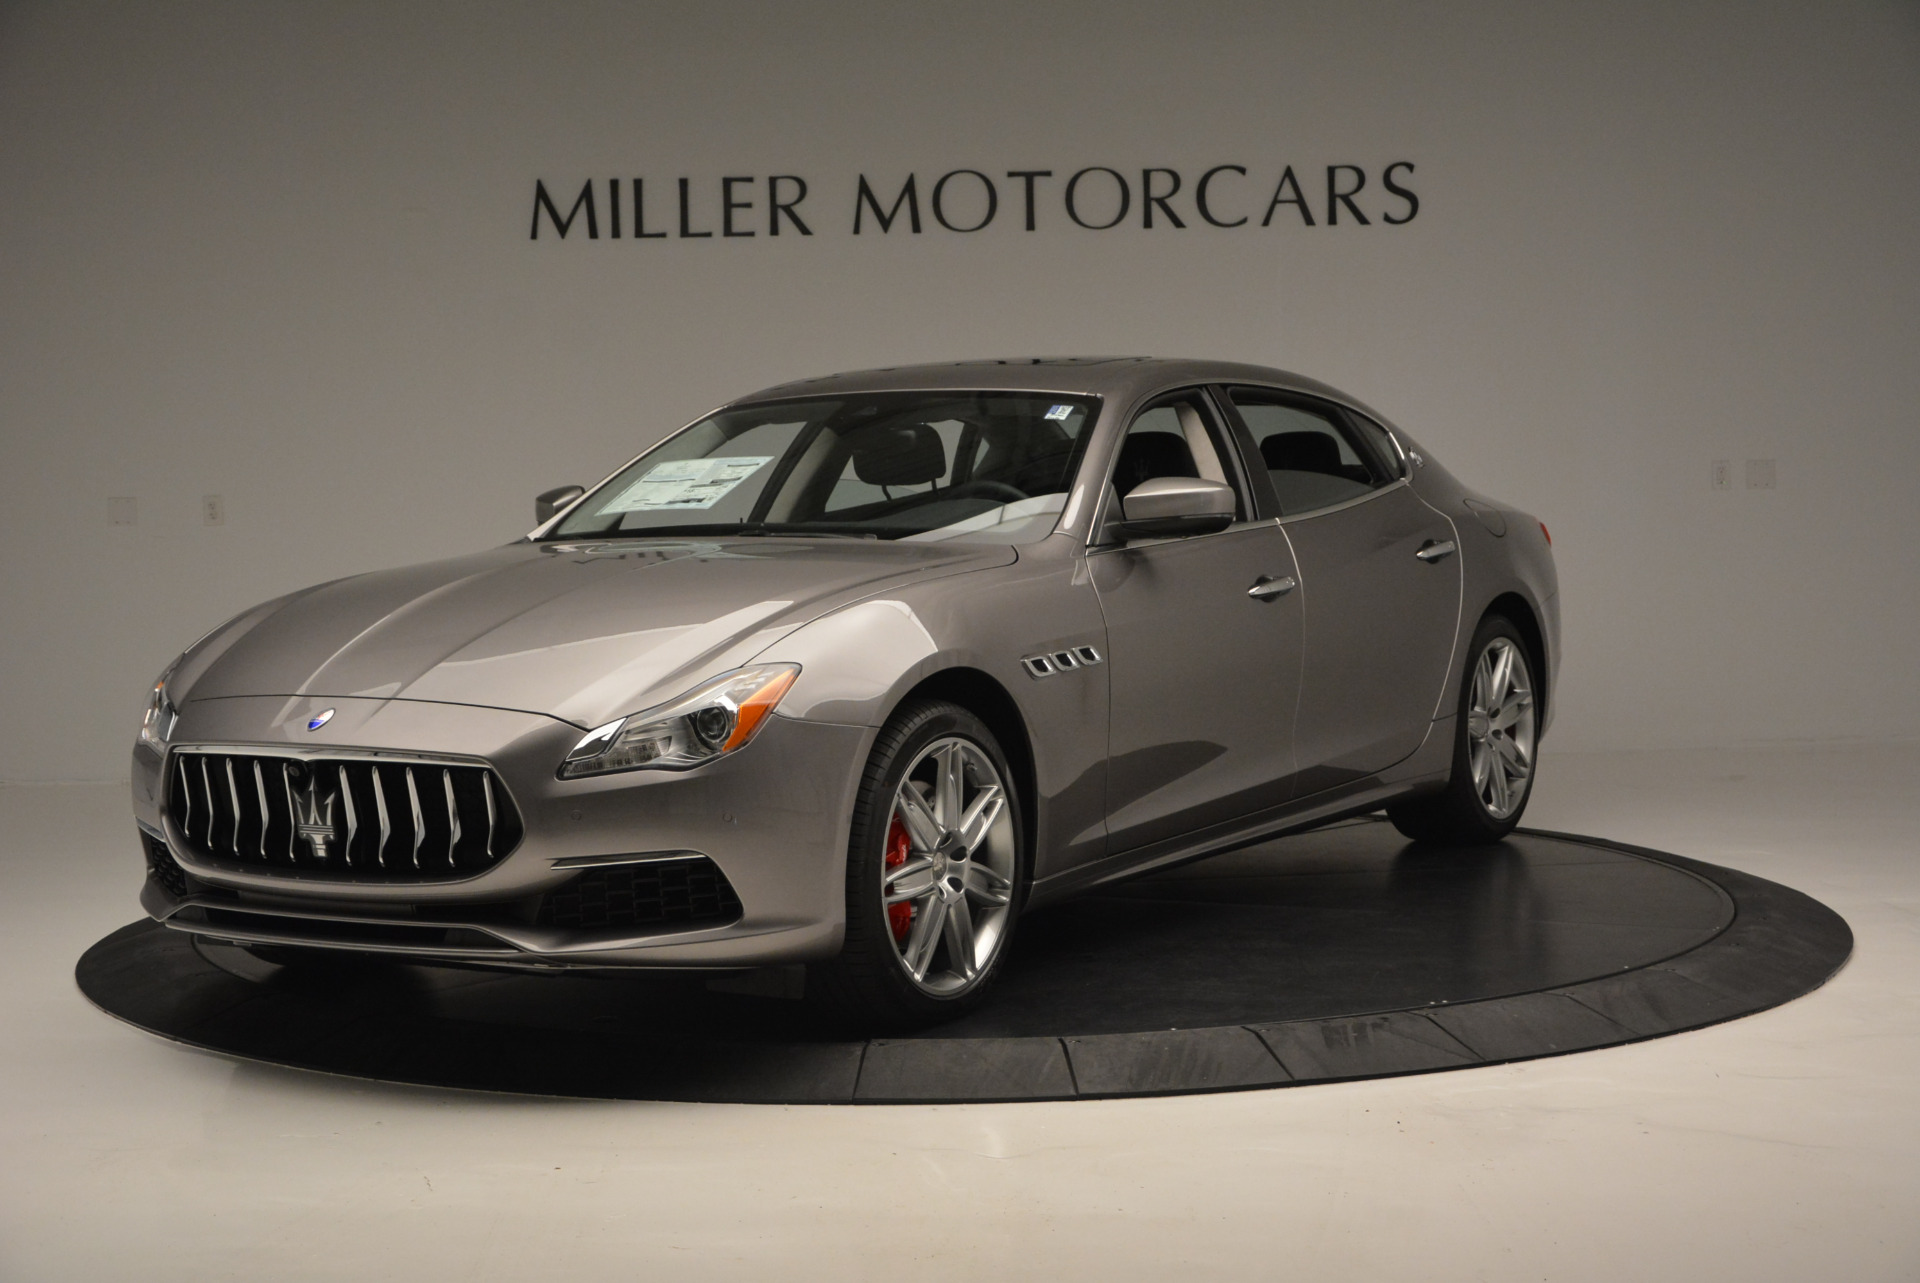 New 2017 Maserati Quattroporte S Q4 GranLusso For Sale In Westport, CT